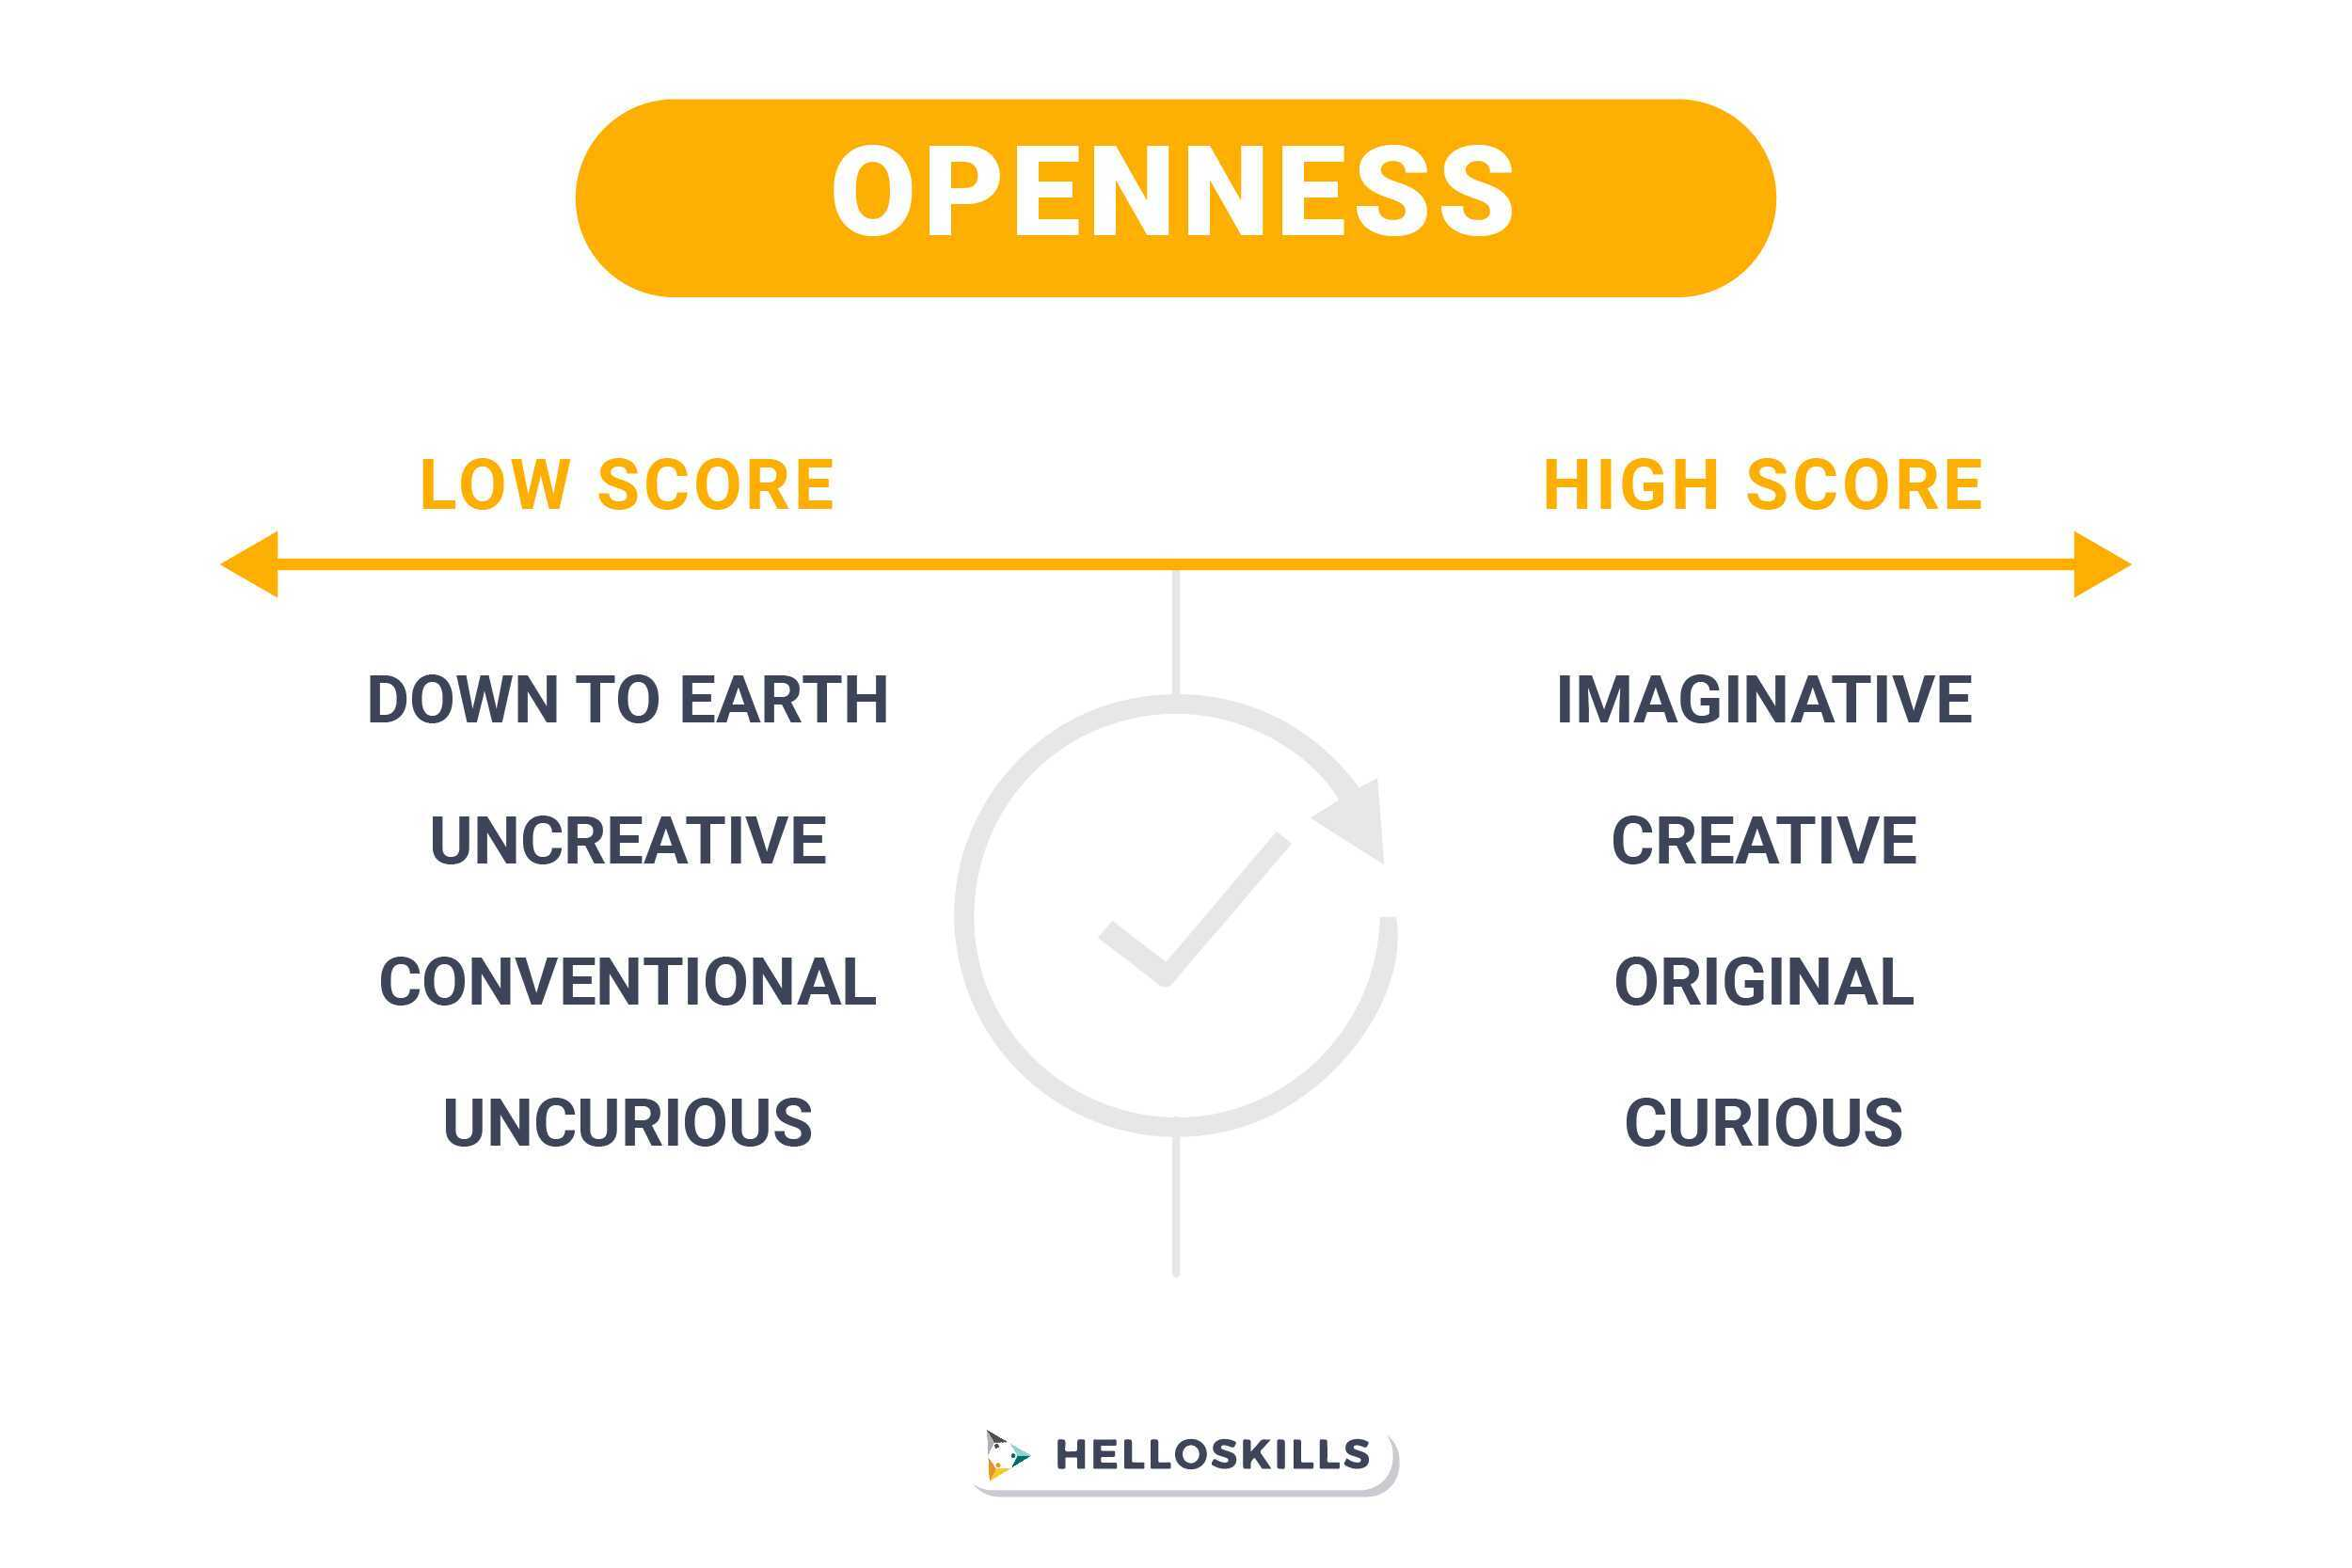 high vs low openness traits